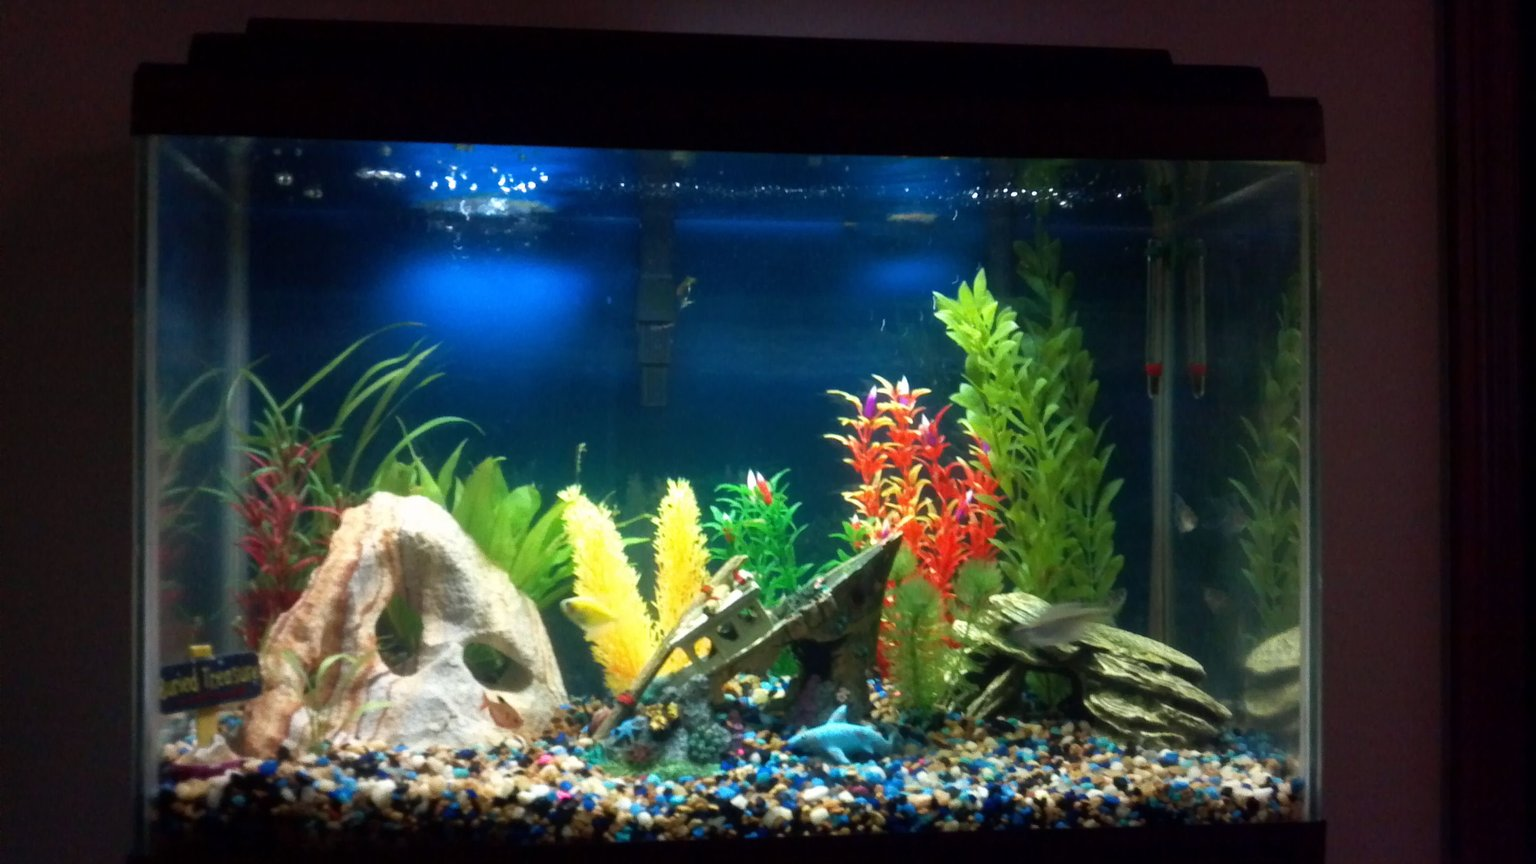 20 gallons freshwater fish tank (mostly fish and non-living decorations) - my tank